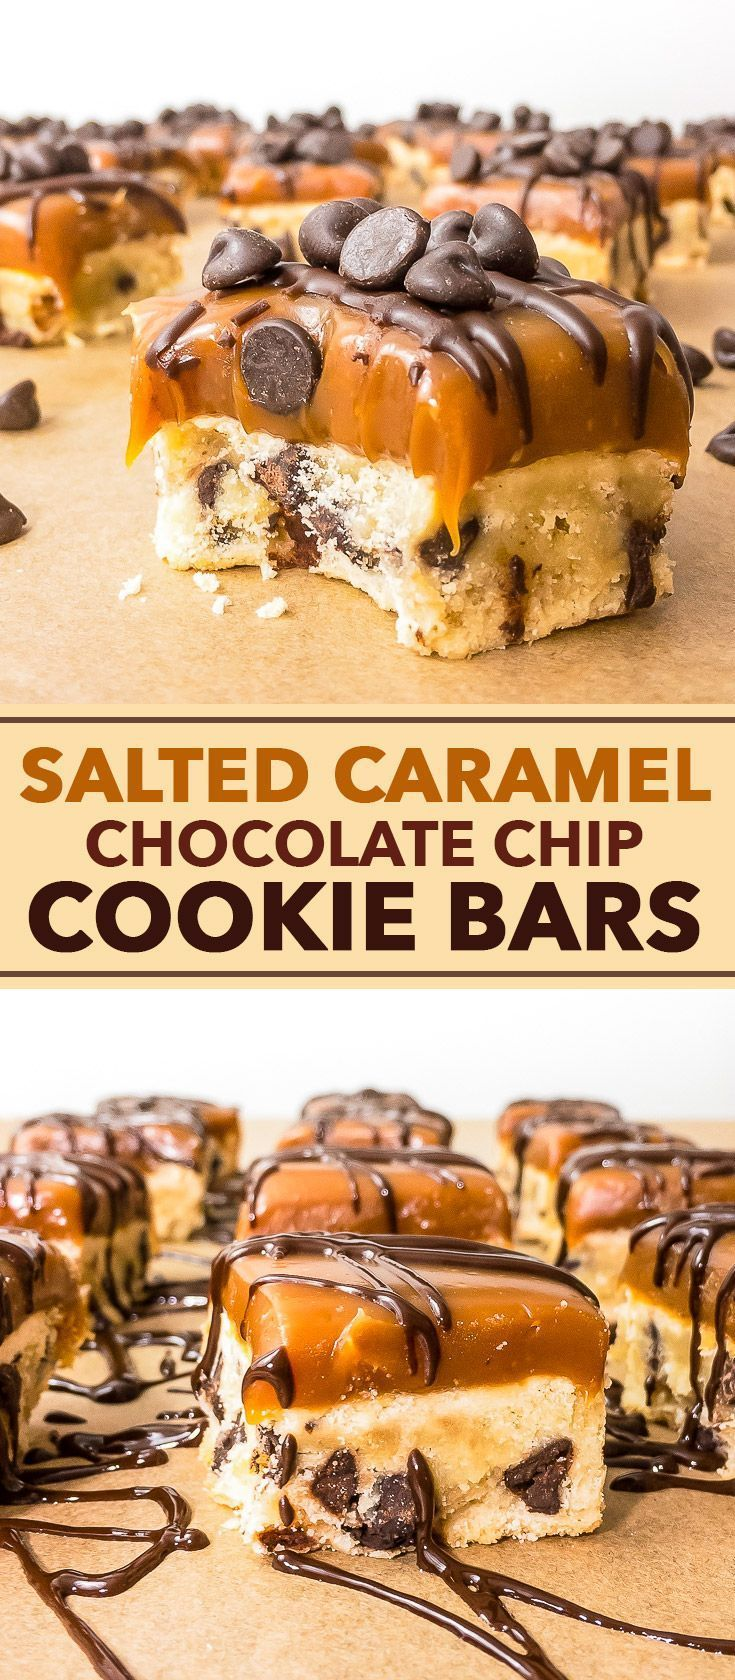 Salted Caramel Chocolate Chip Cookie Bars - These super decadent and incredibly delicious cookie bars are extremely easy to make. Crumbly, buttery chocolate chip cookie dough is paired perfectly with luscious salted caramel, and the extra melted chocolate